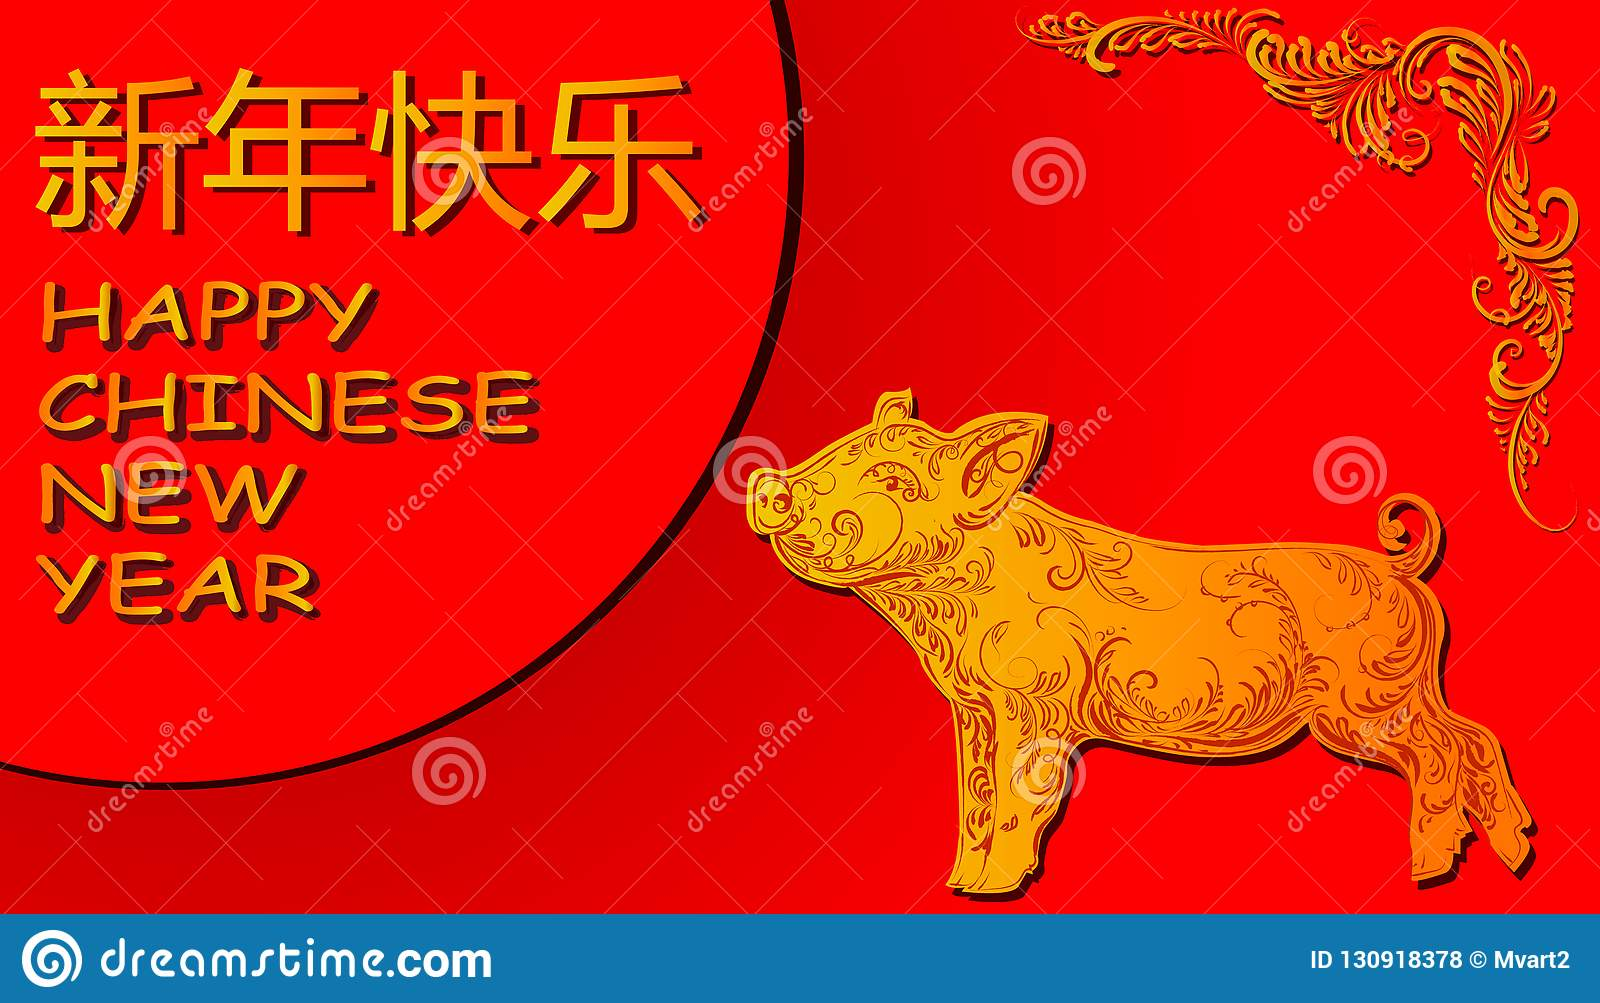 Happy chinese new year 2019, year of the pig Art and technique of painting